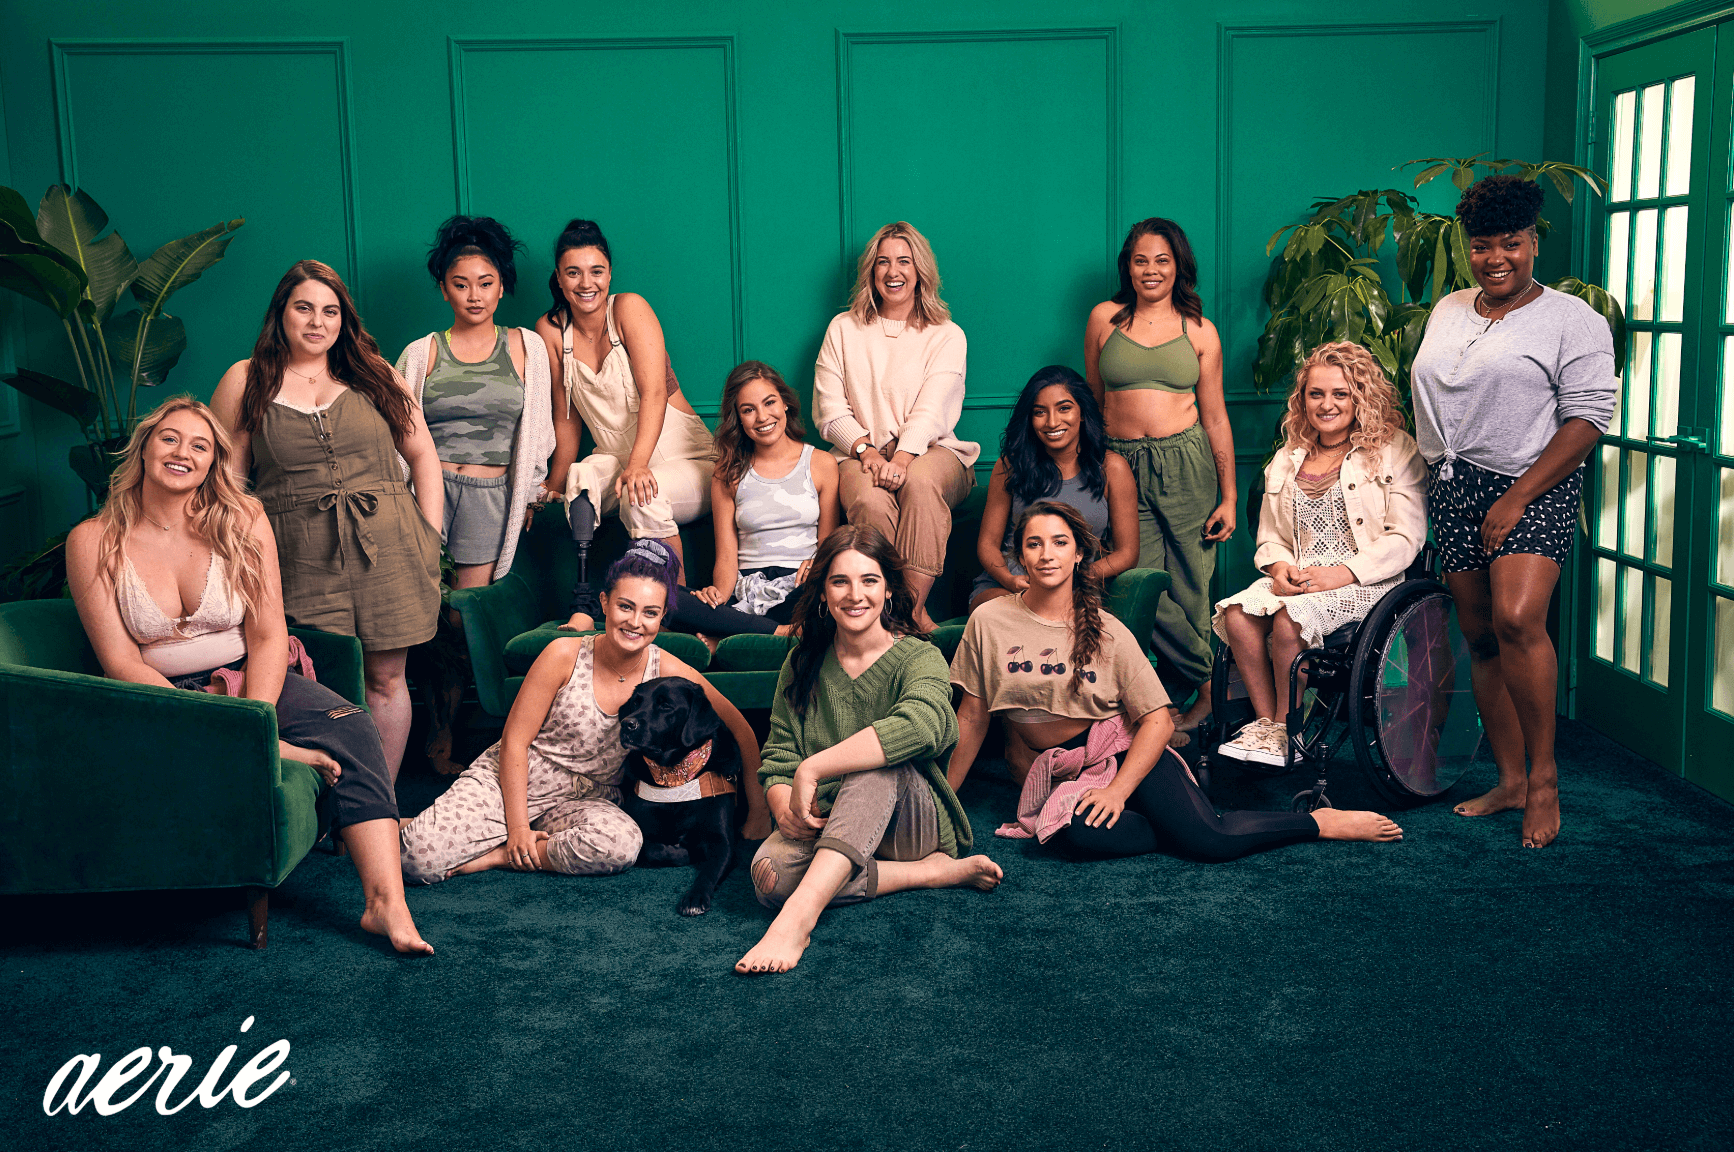 Aerie's 2020 Role Models wearing Aerie products in a green room